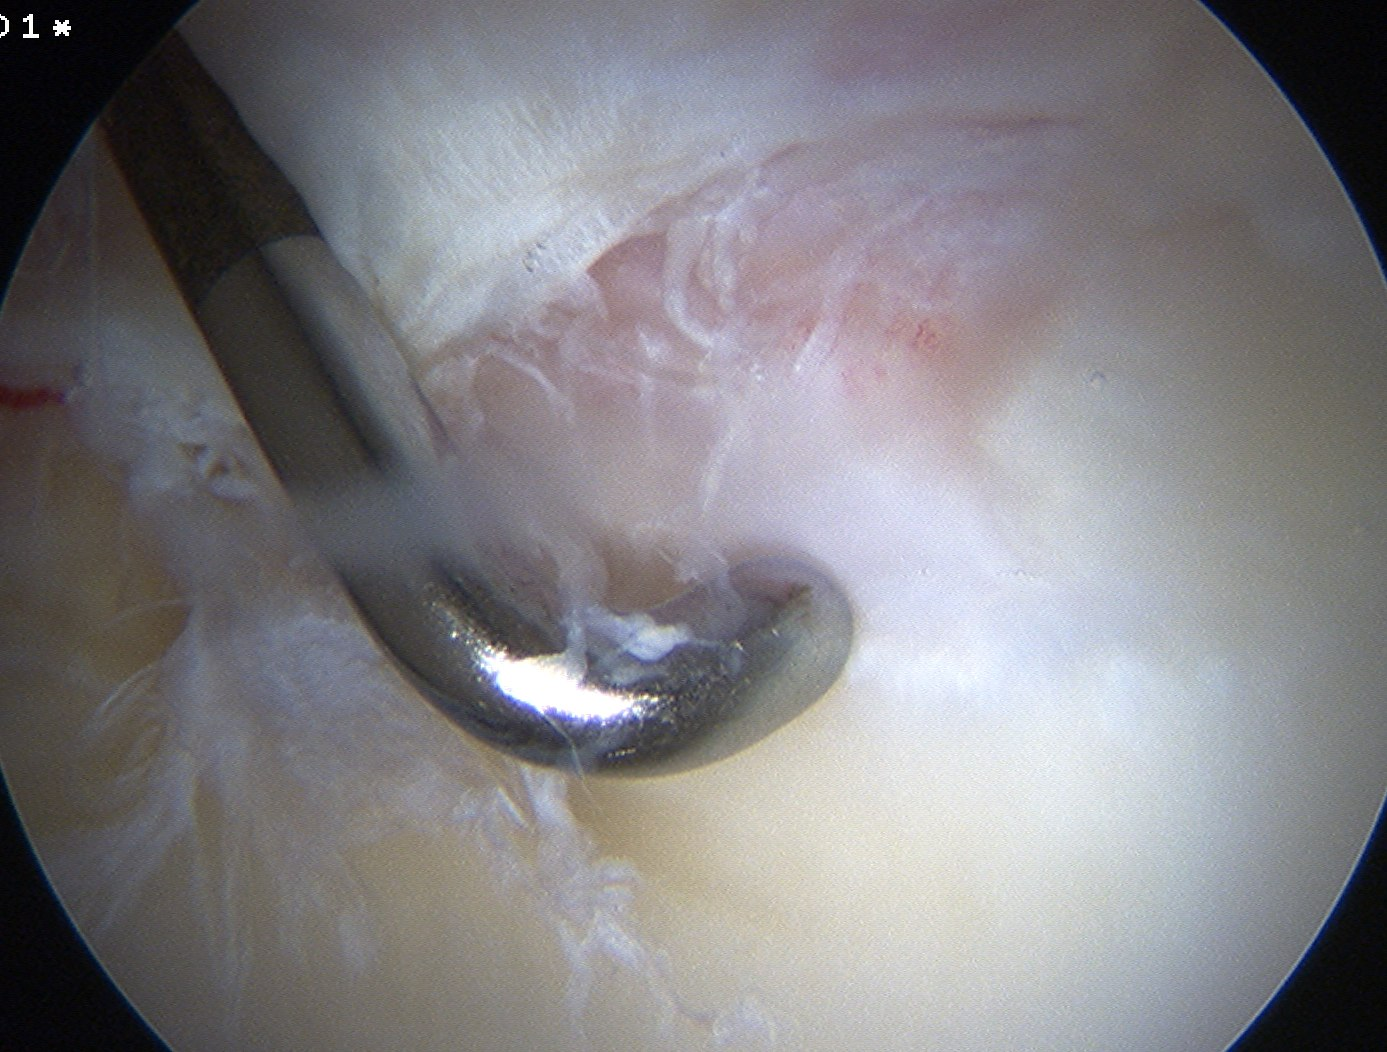 Hip Arthroscopy Degenerative Labral Tear From CAM lesion